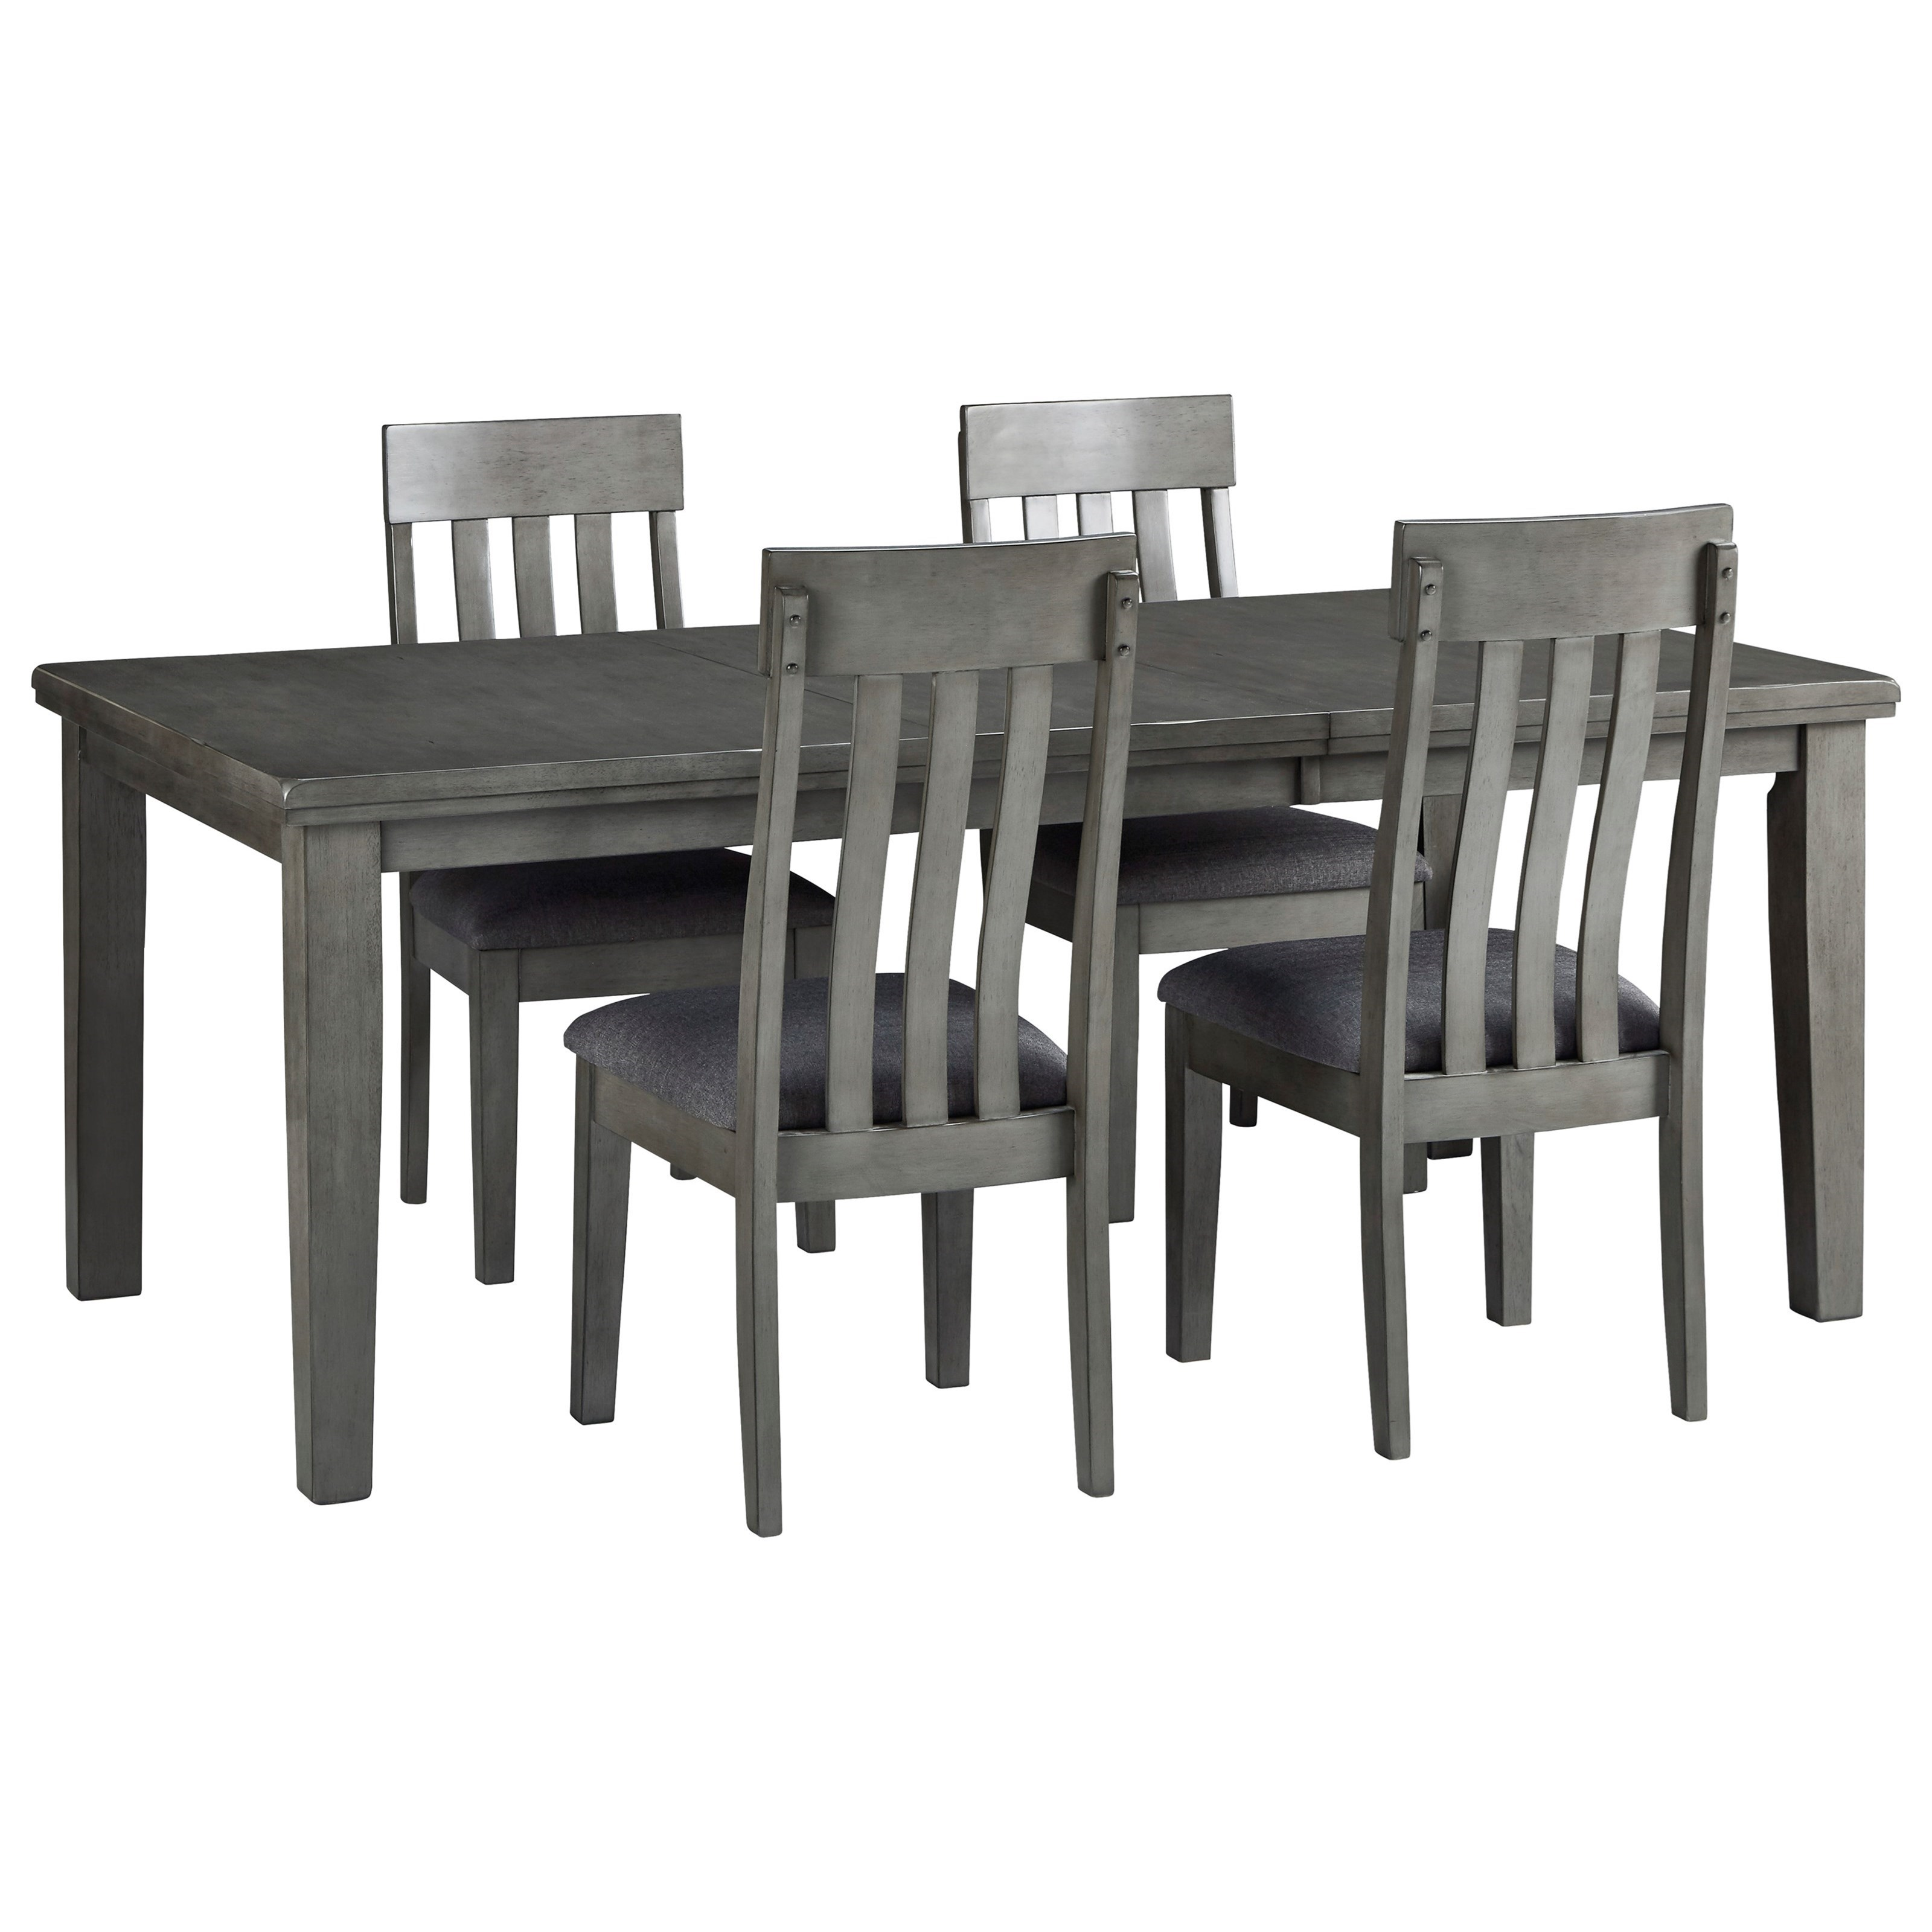 Hallanden 5-Piece Table and Chair Set by Signature Design at Fisher Home Furnishings